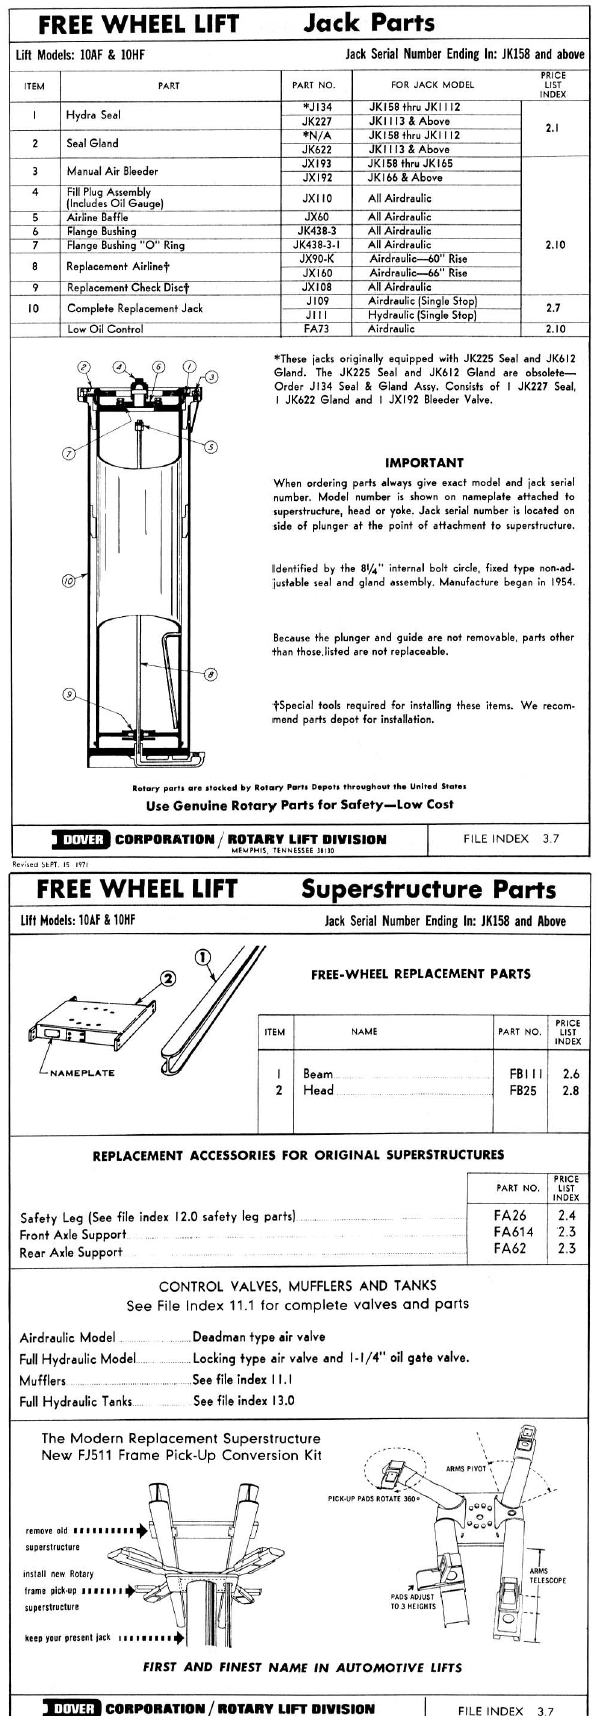 In Ground Lift Parts : Parts diagram for rotary af and hf serials jk above